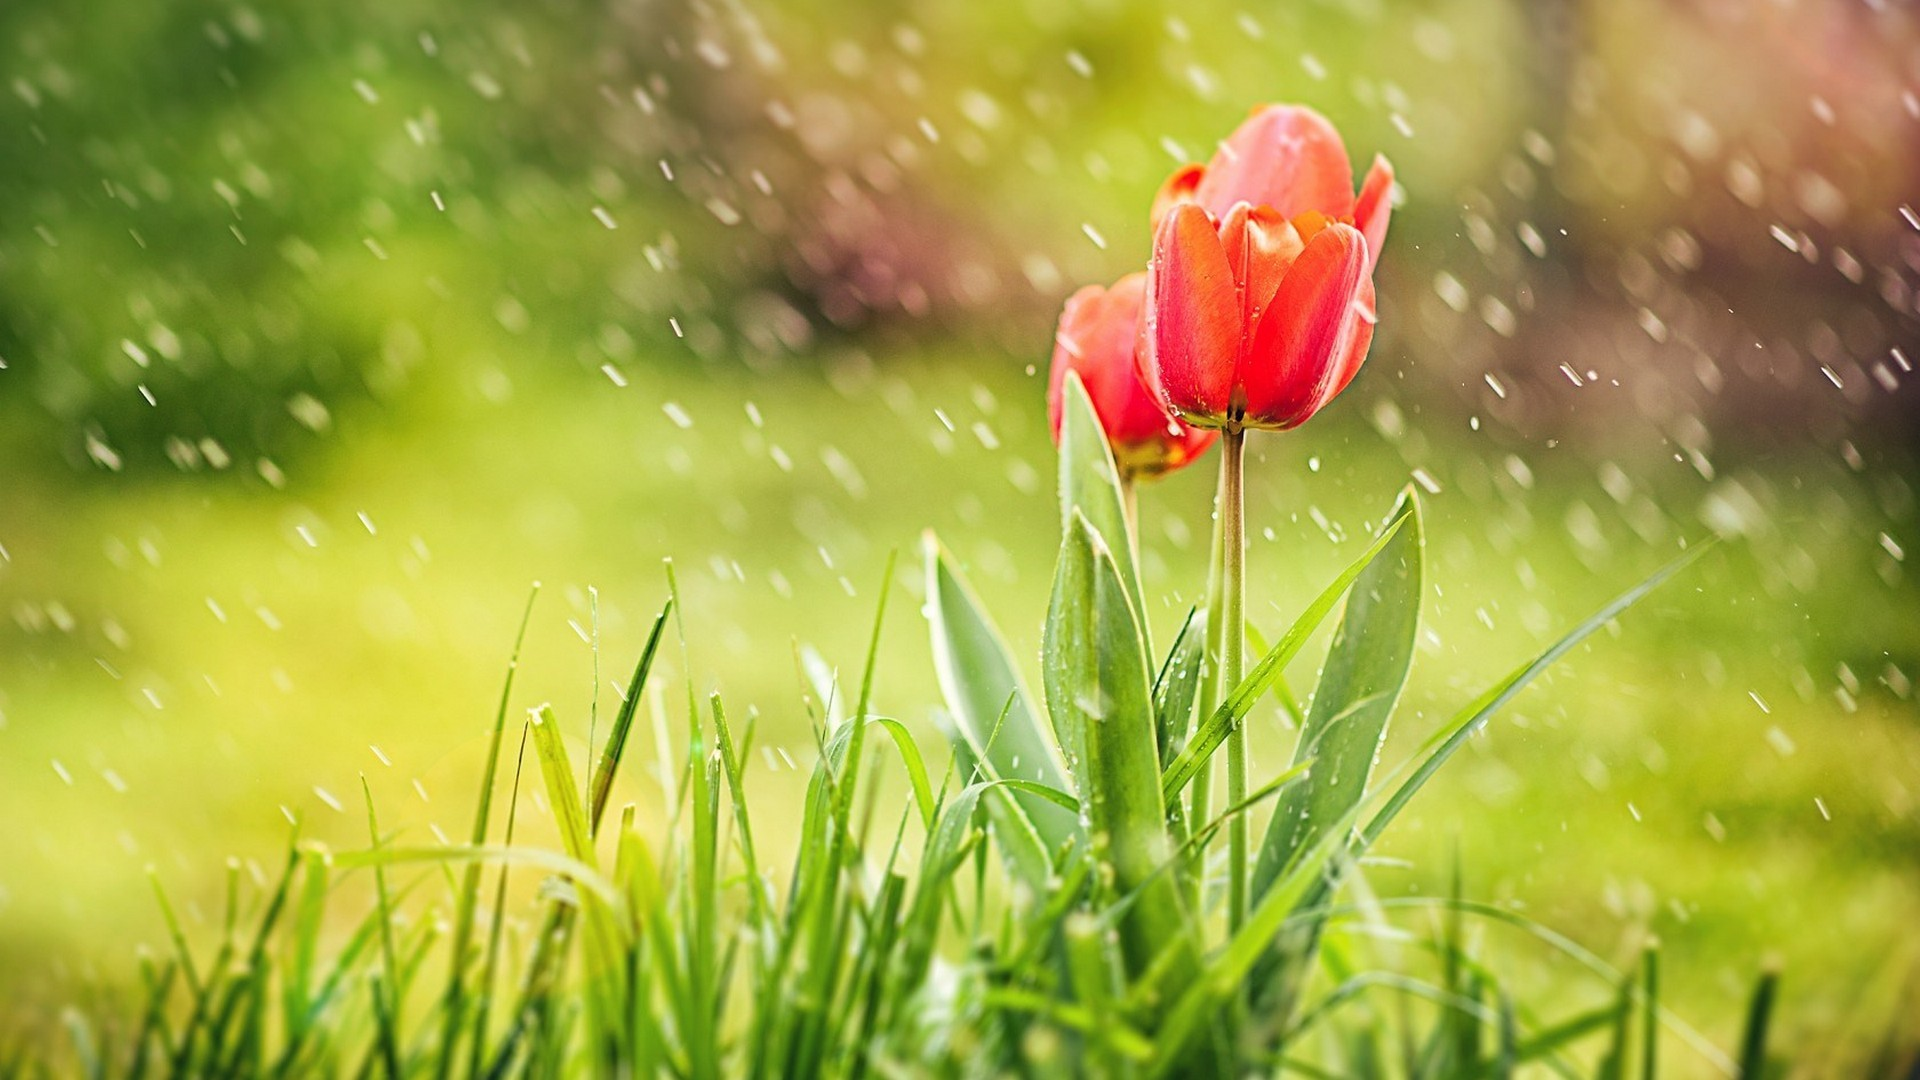 1920x1080 Tulips in Rain Hd Wallpaper